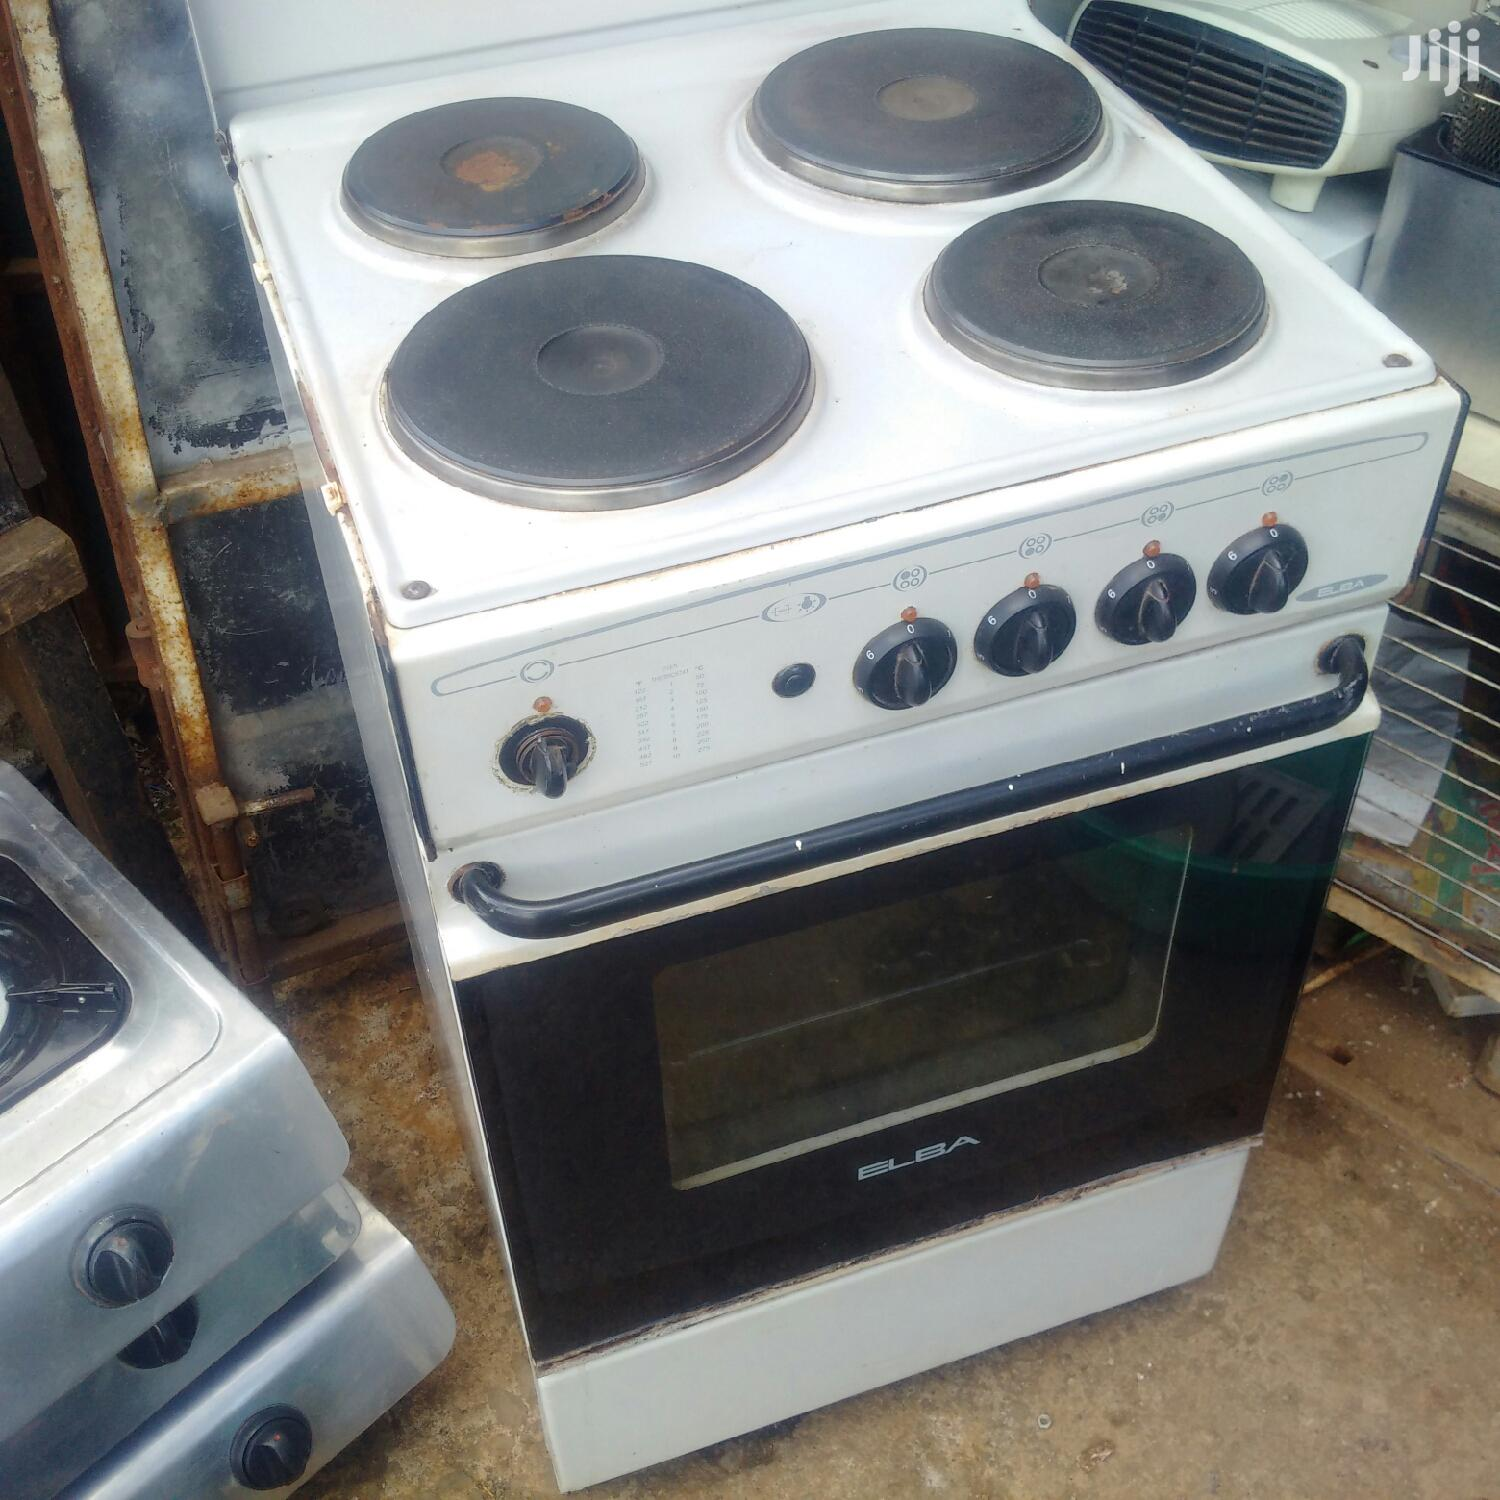 Elba EB-121 4 Plate Electric Cooker Oven